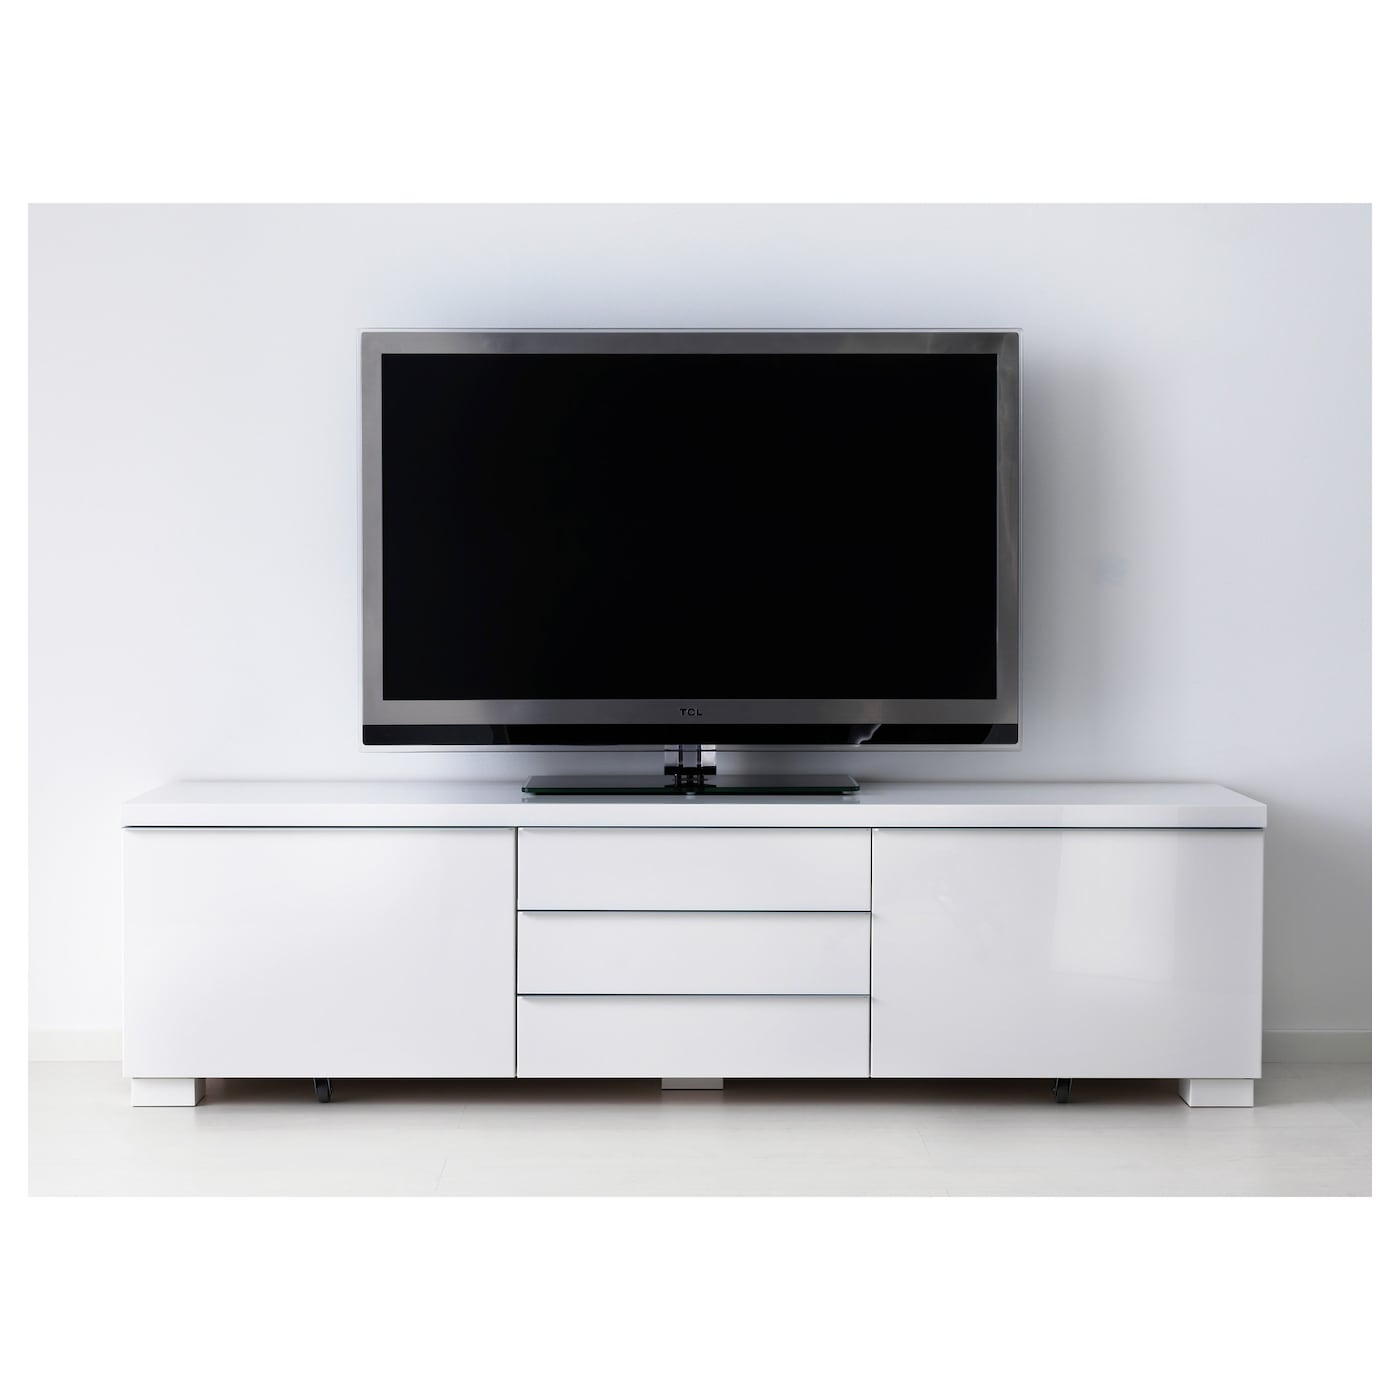 bestÅ burs tv bench high-gloss white 180 x 41 x 49 cm - ikea